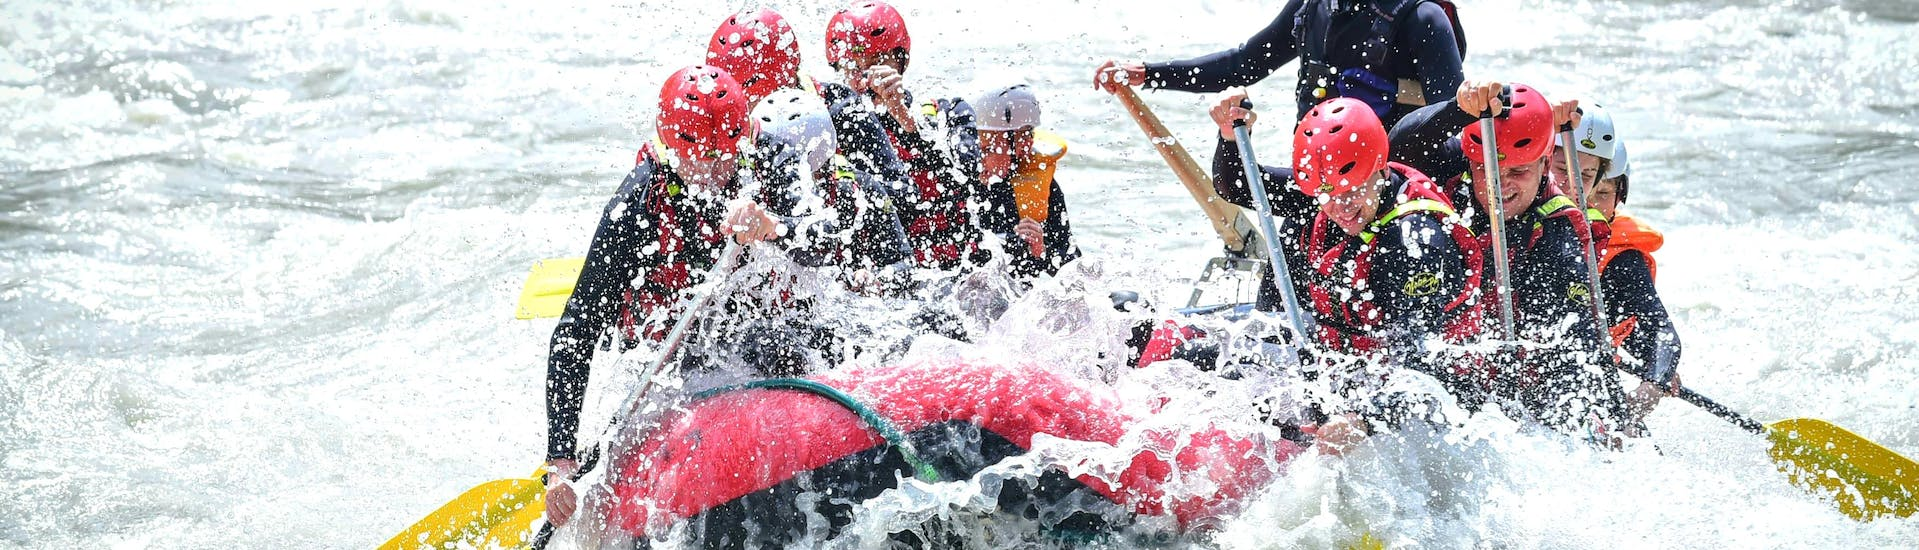 "A rafting group mastering the wild waves and rollers of Ötztaler Ache on their Rafting Tour ""Extreme"" with Experience together with two state-certified guides from Natur Pur Outdoorsports."